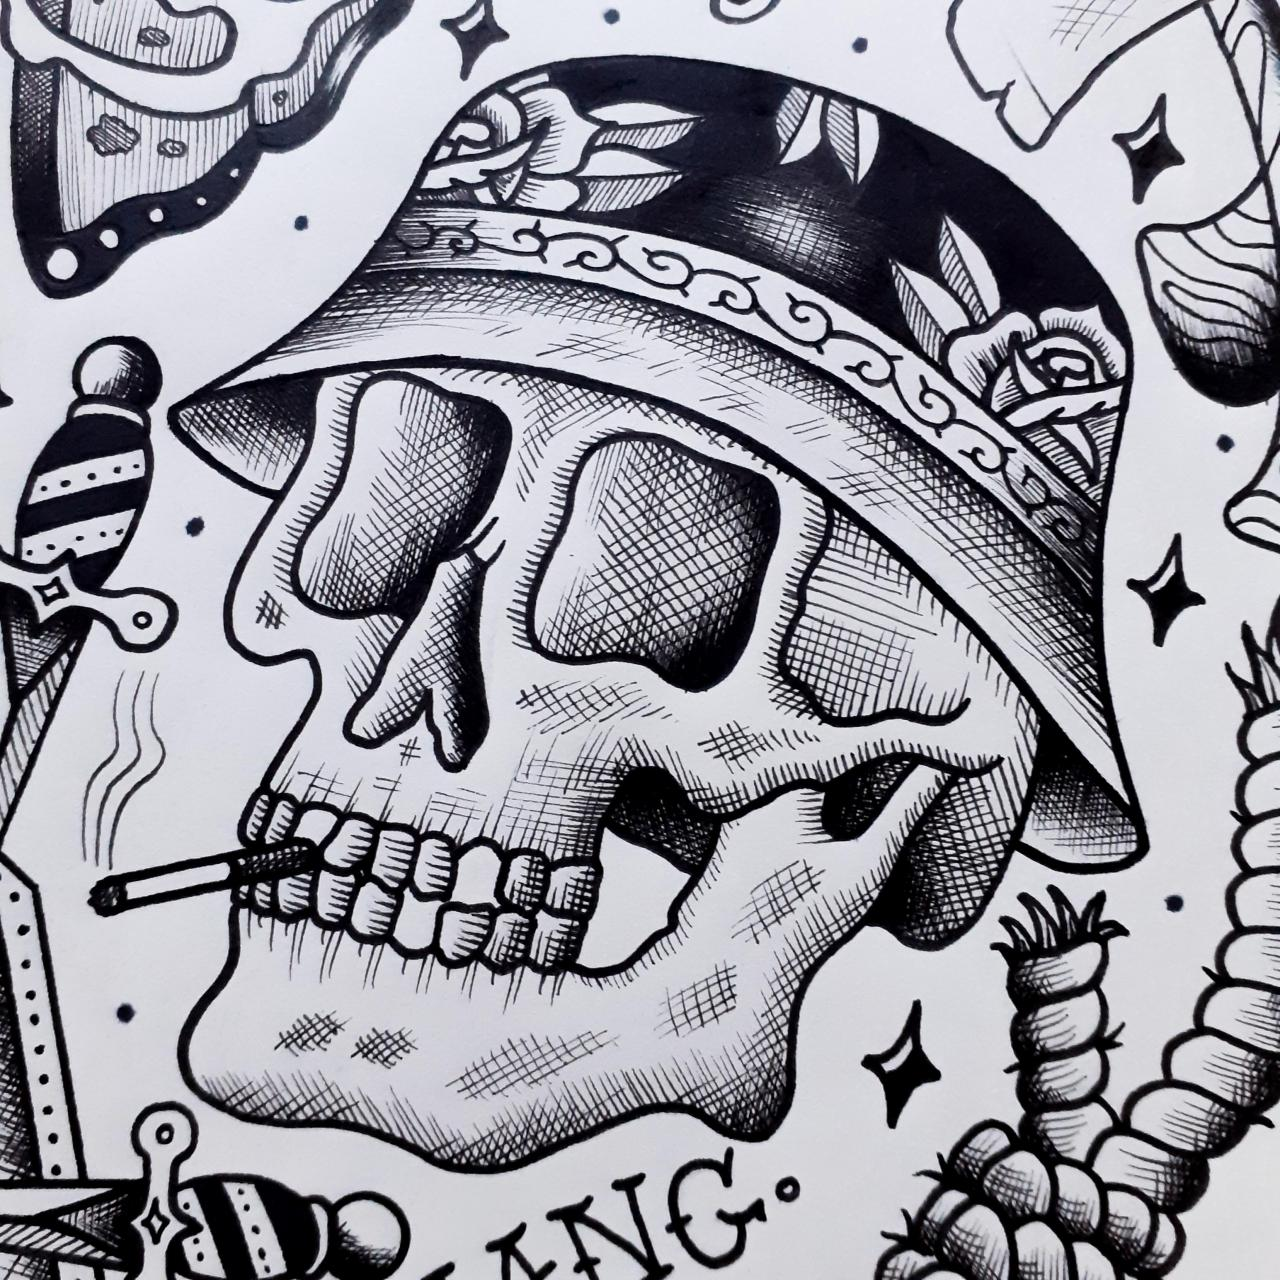 Part of a bigger flash sheet im working on